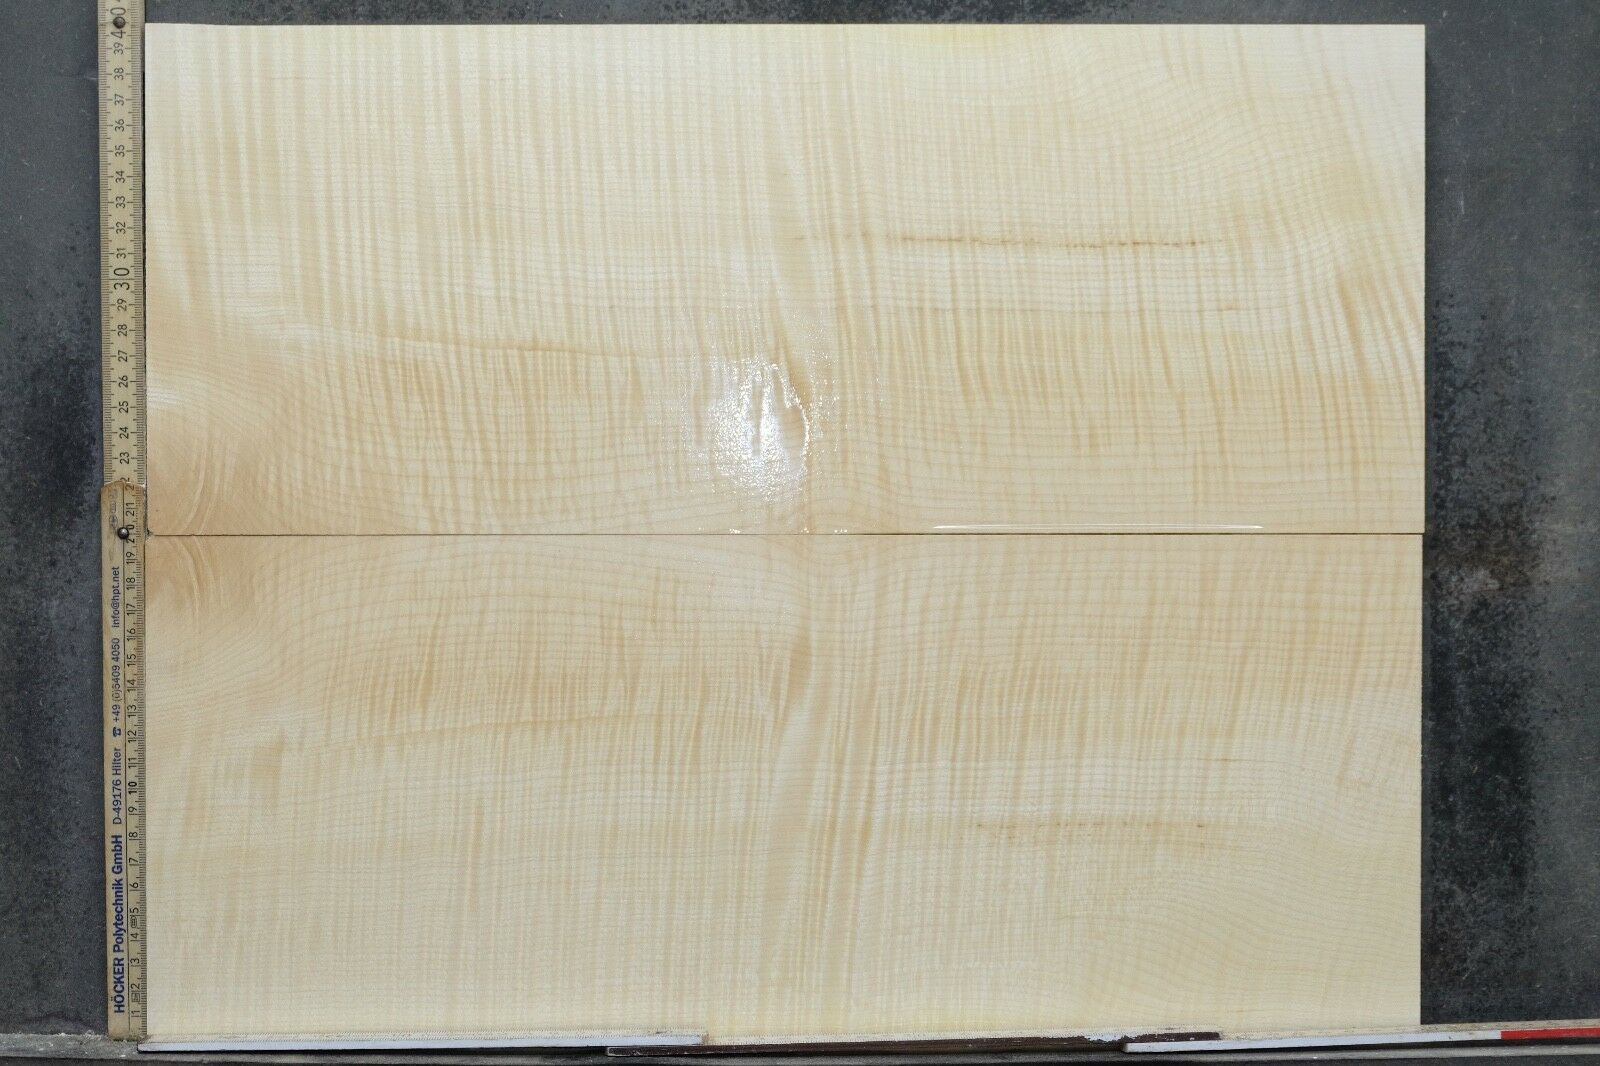 Tonewood Riegel Ahorn Flamed Maple 11 mm Aufleimer Guitar Tonholz Droptop 378